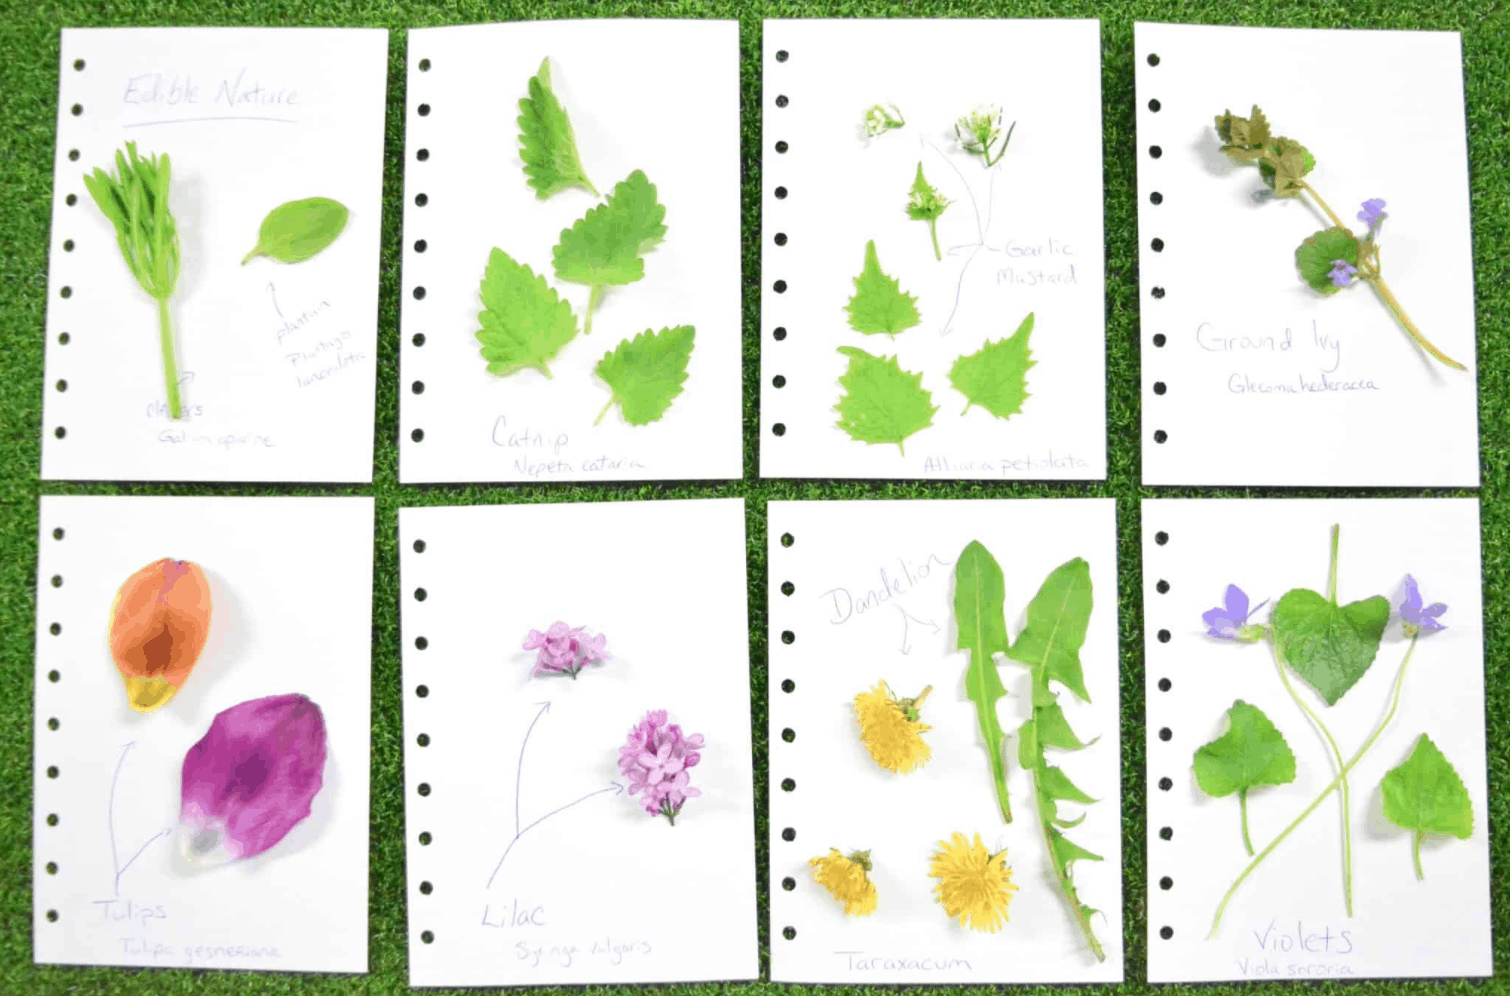 layout of pressing flowers field journal